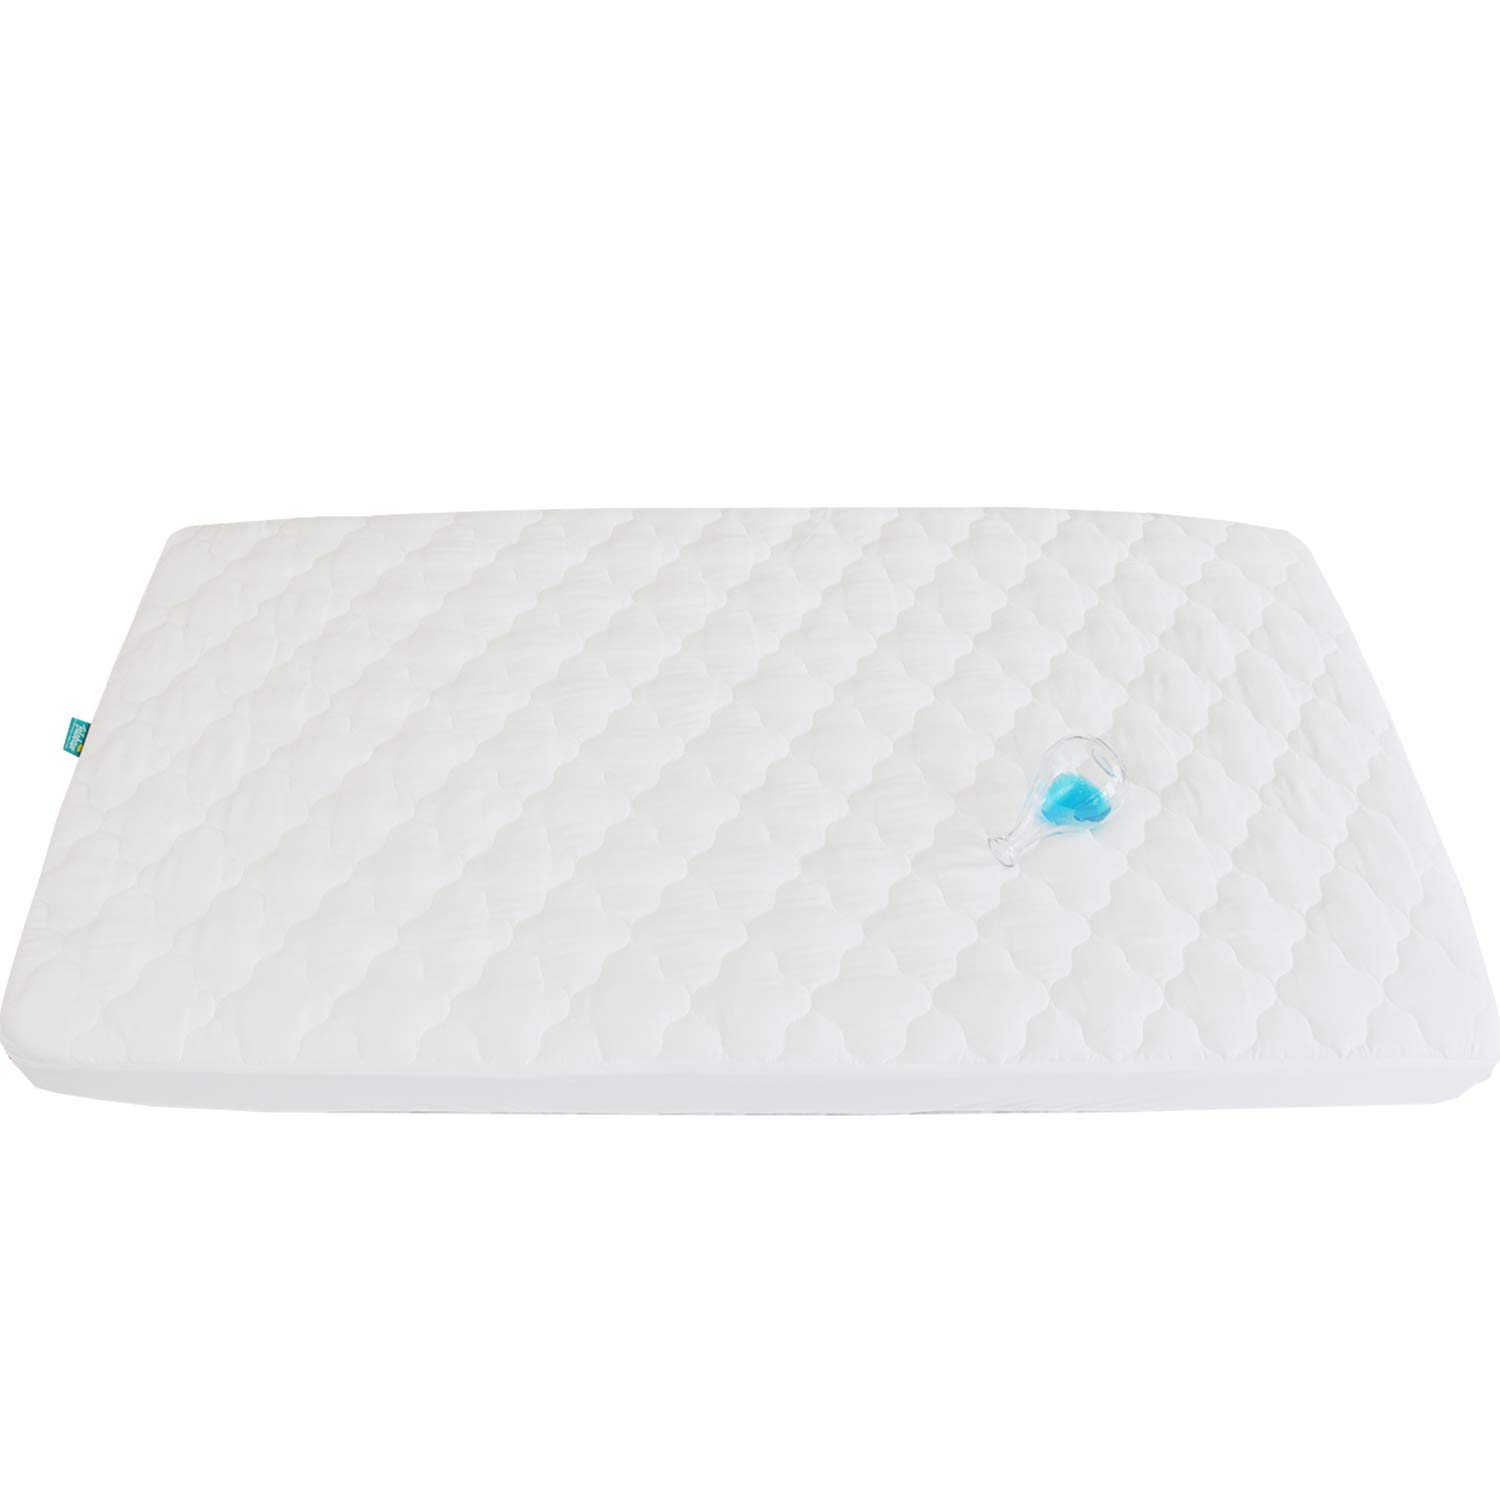 Pack N Play Waterproof Baby Crib Mattress Pad - 39'' x 27'' Fitted Cover Protector for Mini & Portable Playard Mattresses - Hypoallergenic Ultra Soft Padding -White by Biloban